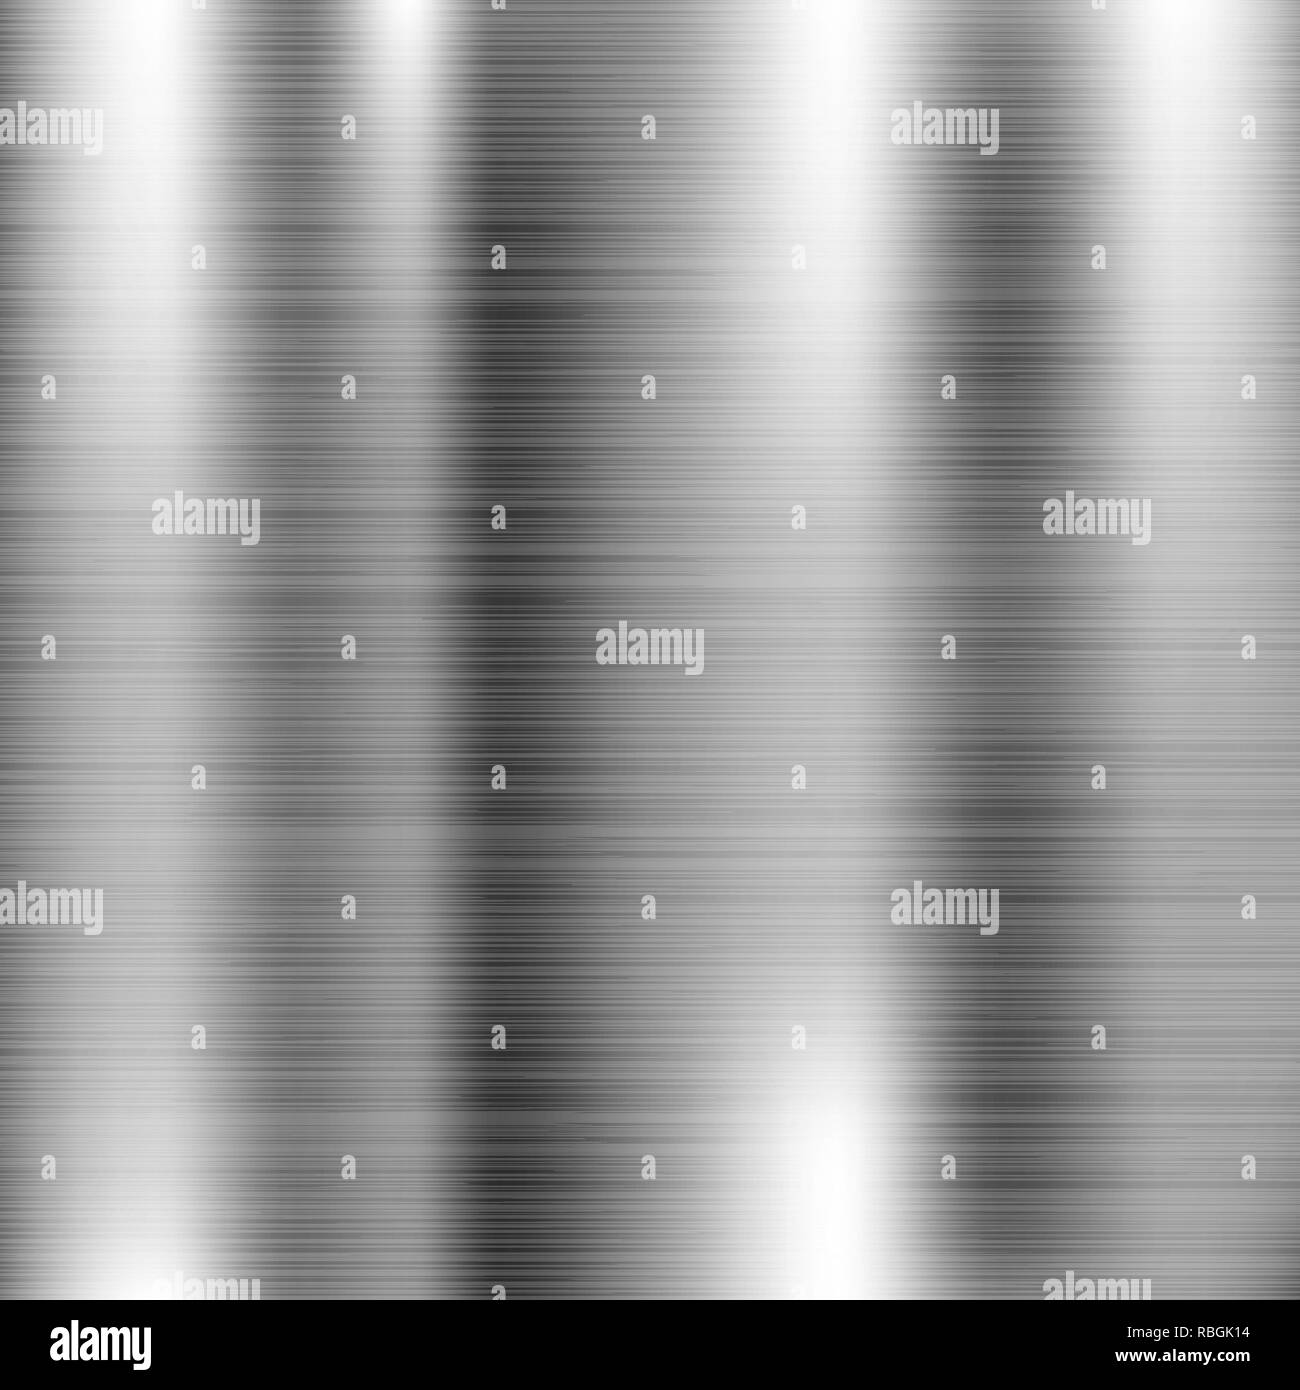 Brushed metal texture. Scratched shiny 3d surface - Stock Image